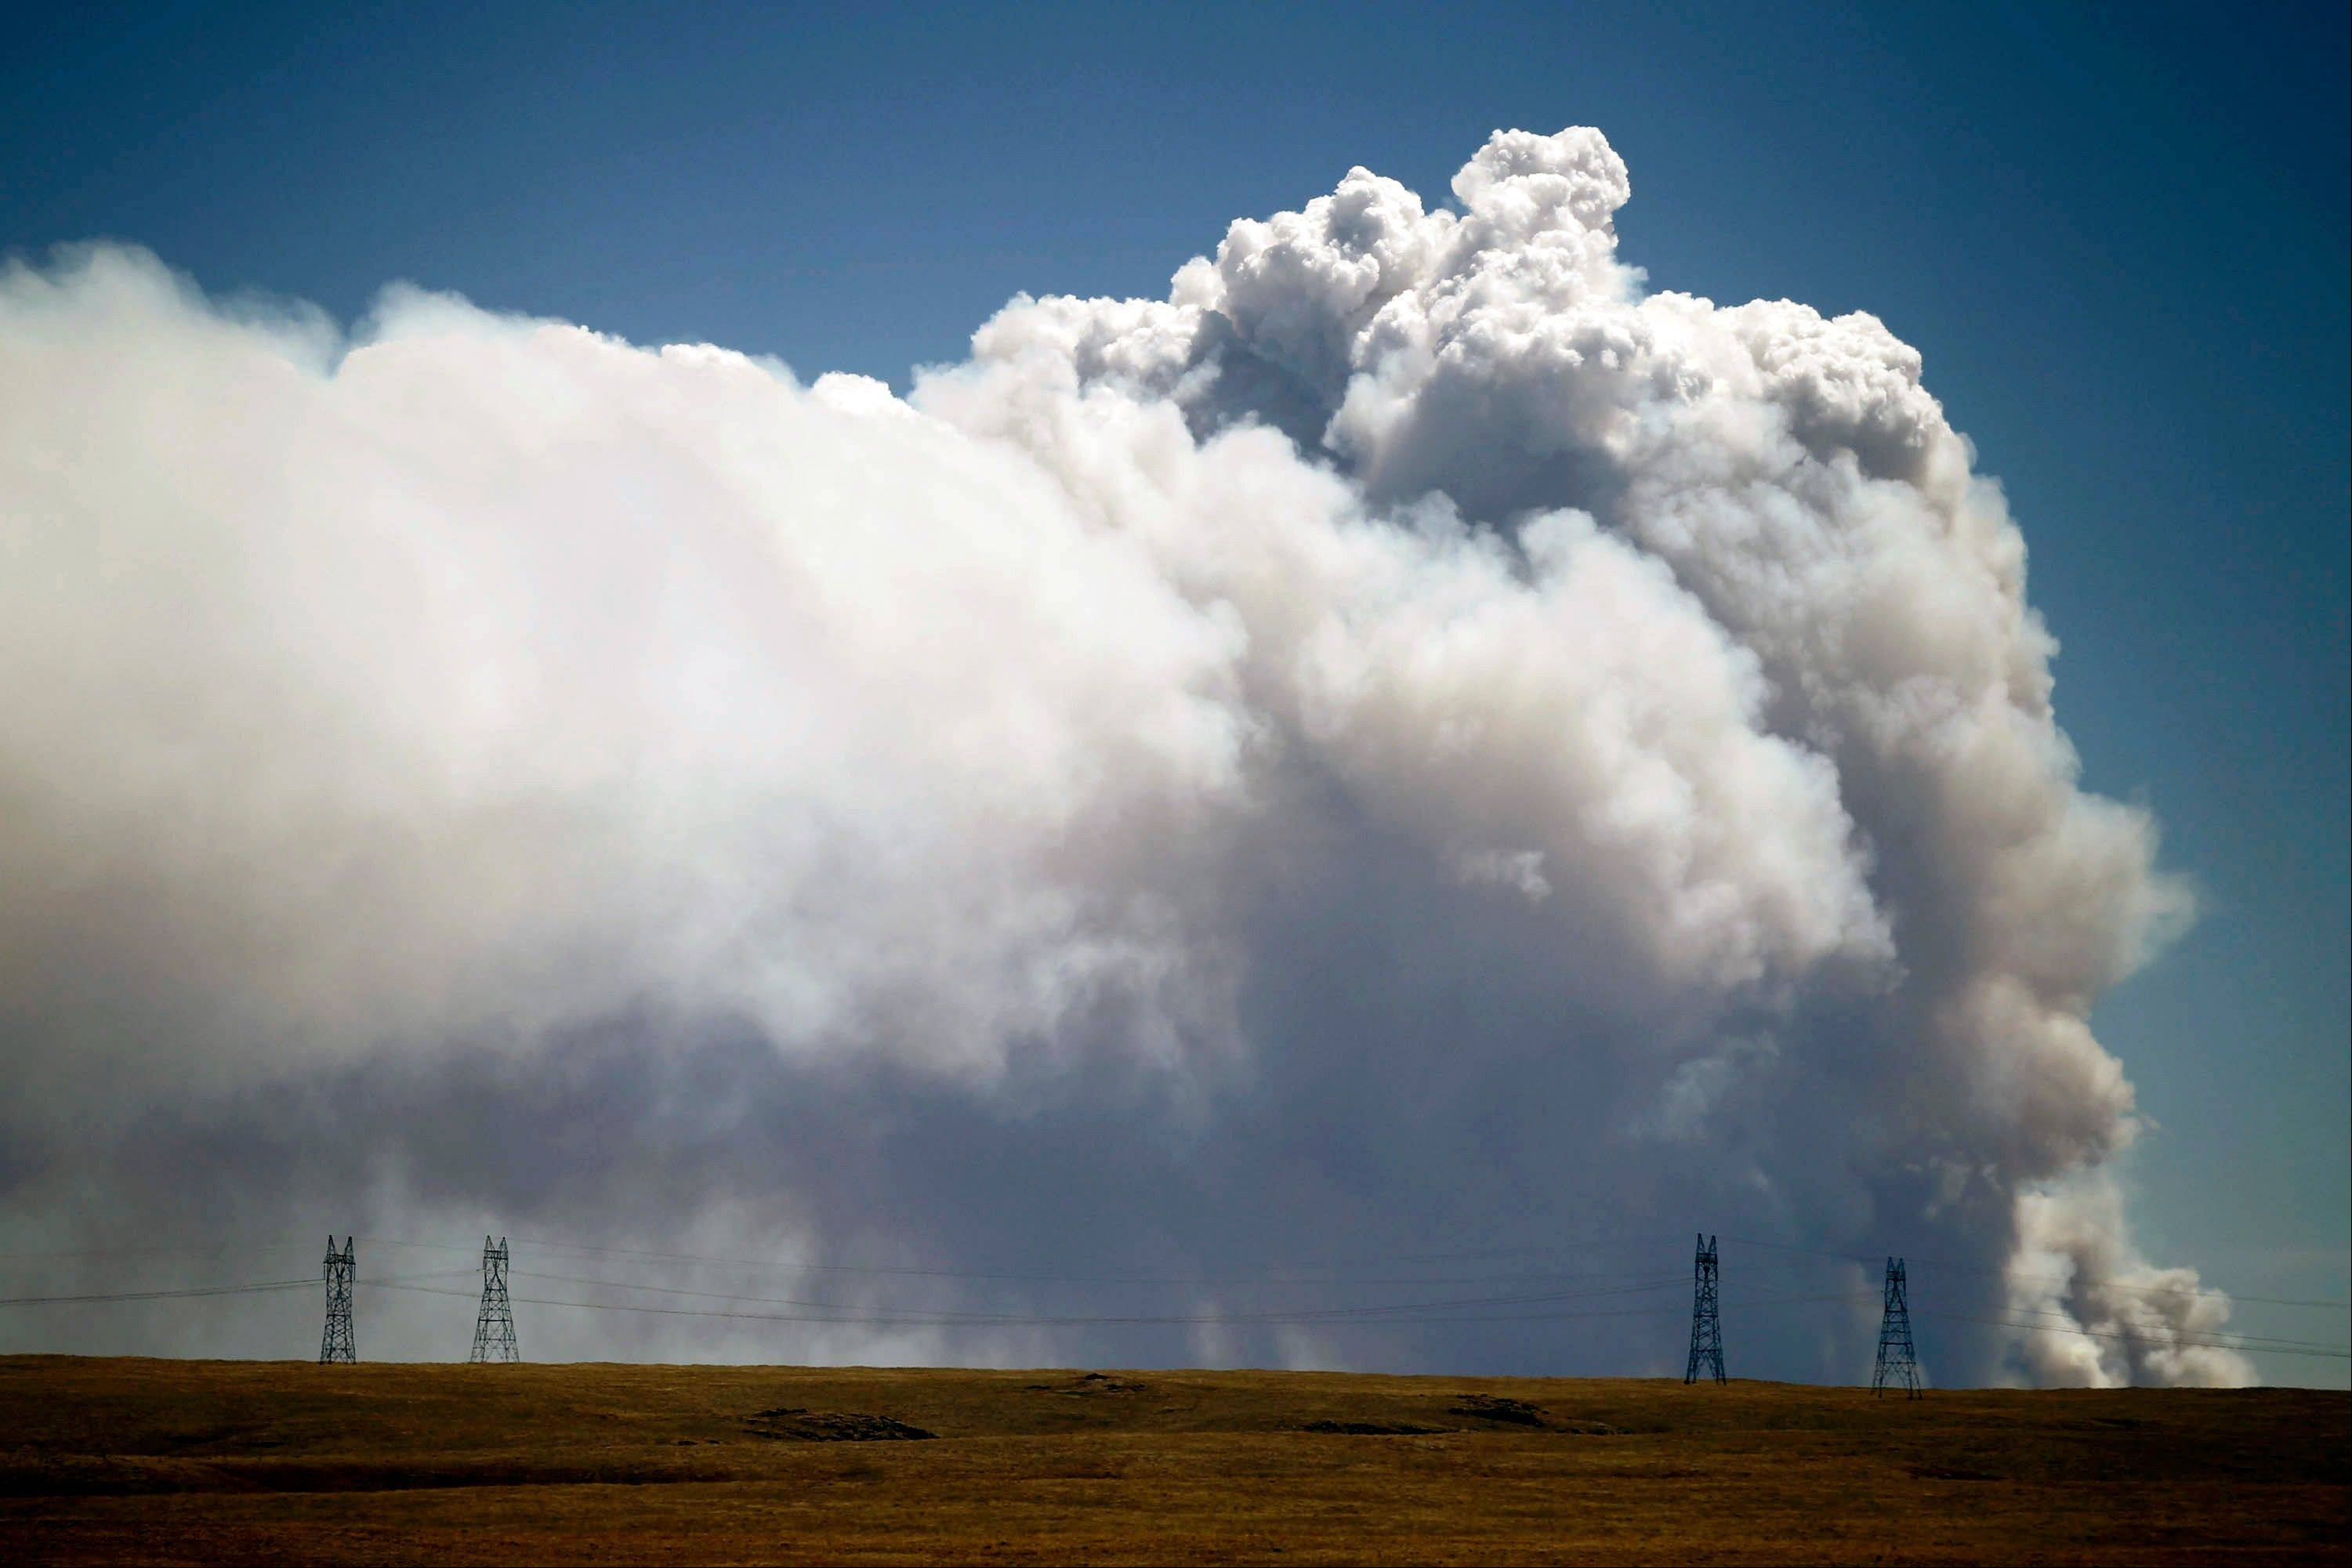 Smoke is visible from Tie Siding, Wyo., as a wildfire burns northwest of Fort Collins, Colo., on Saturday, June 9, 2012. The cause of the fire is not yet known.